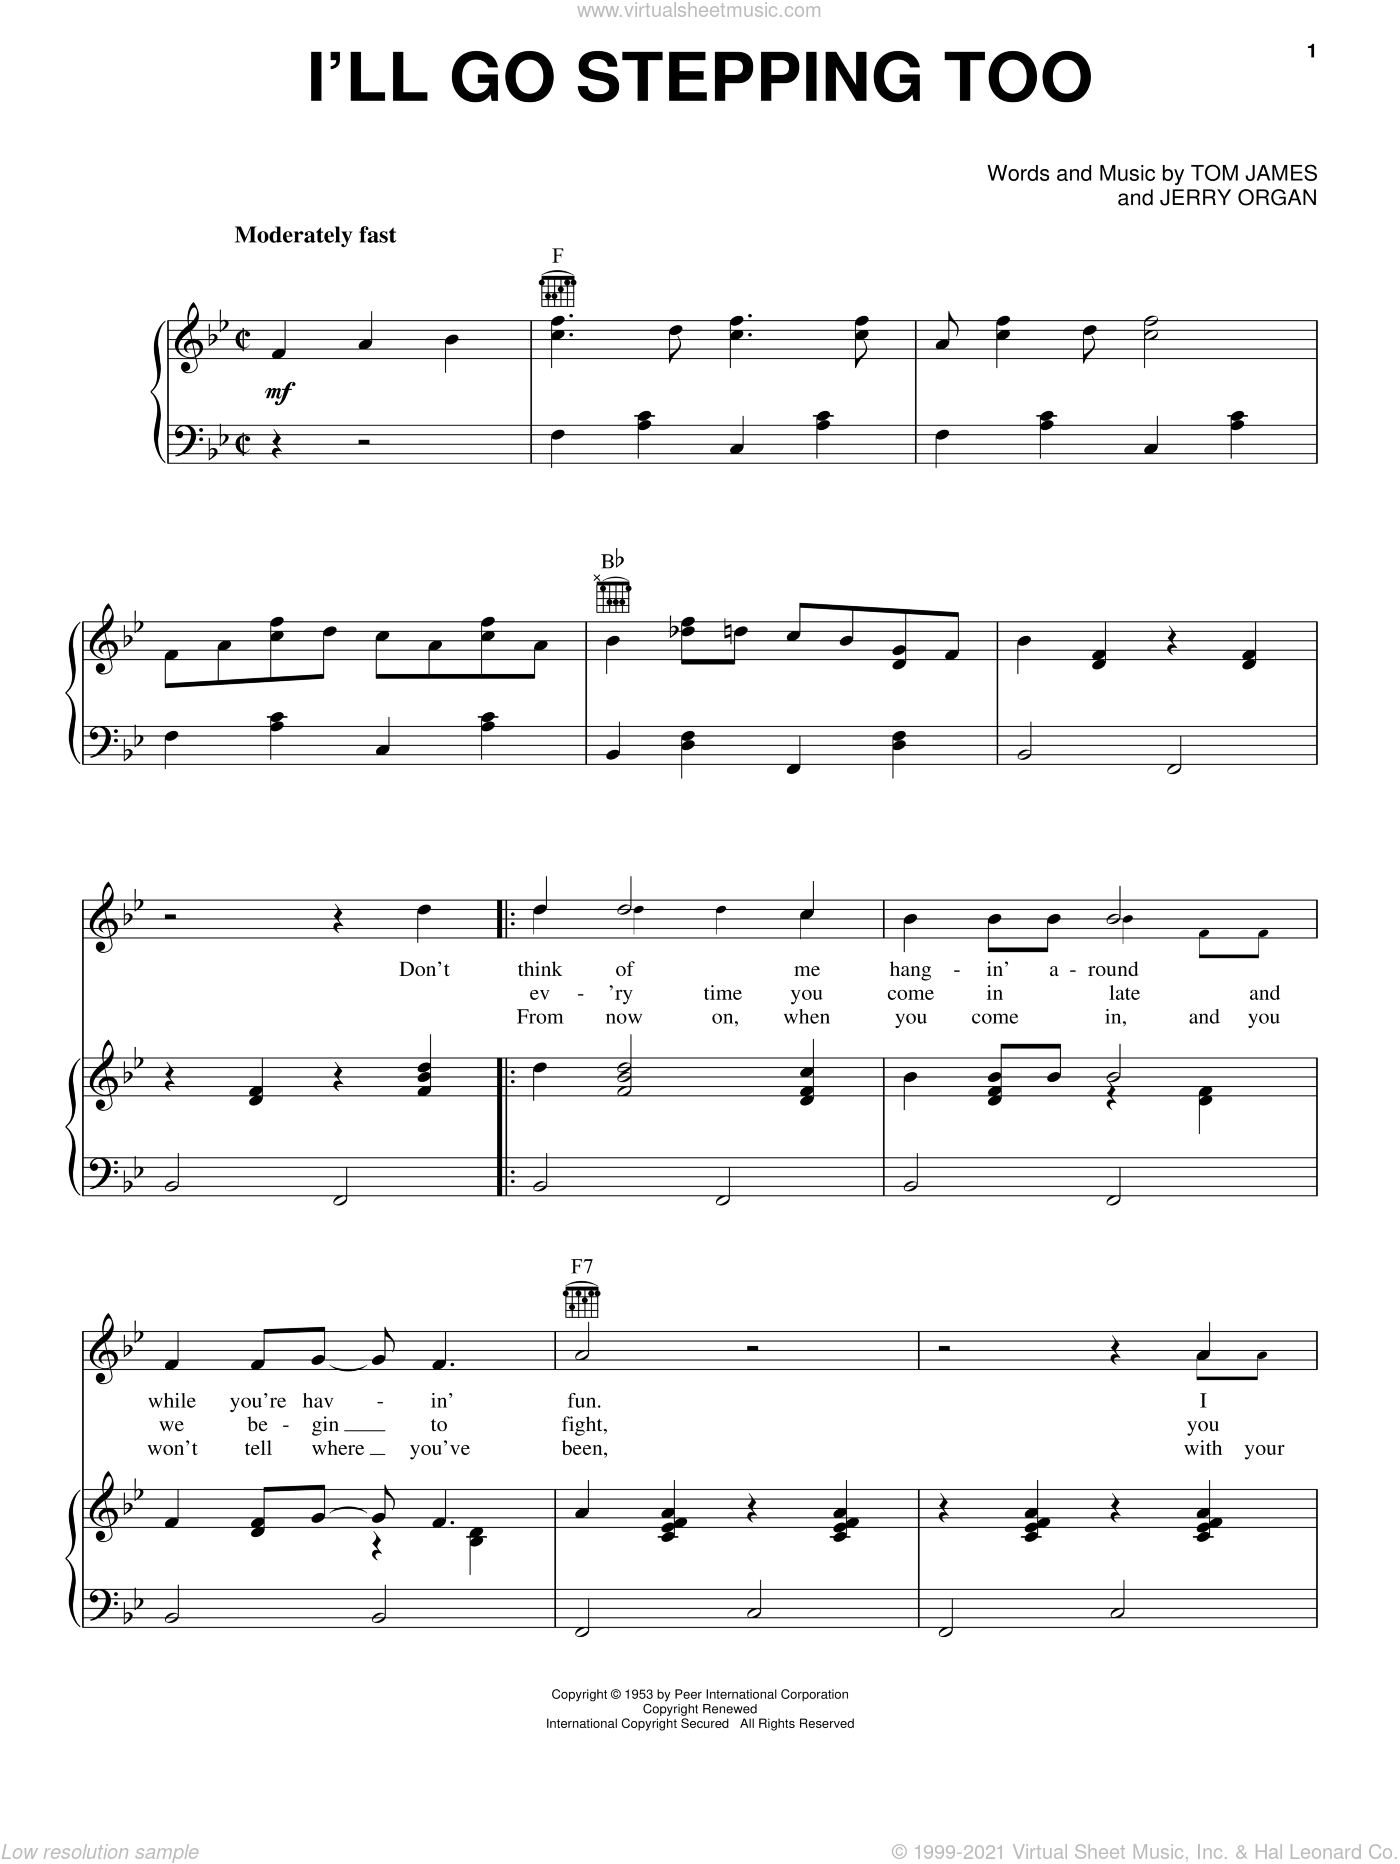 I'll Go Stepping Too sheet music for voice, piano or guitar by Tommy James